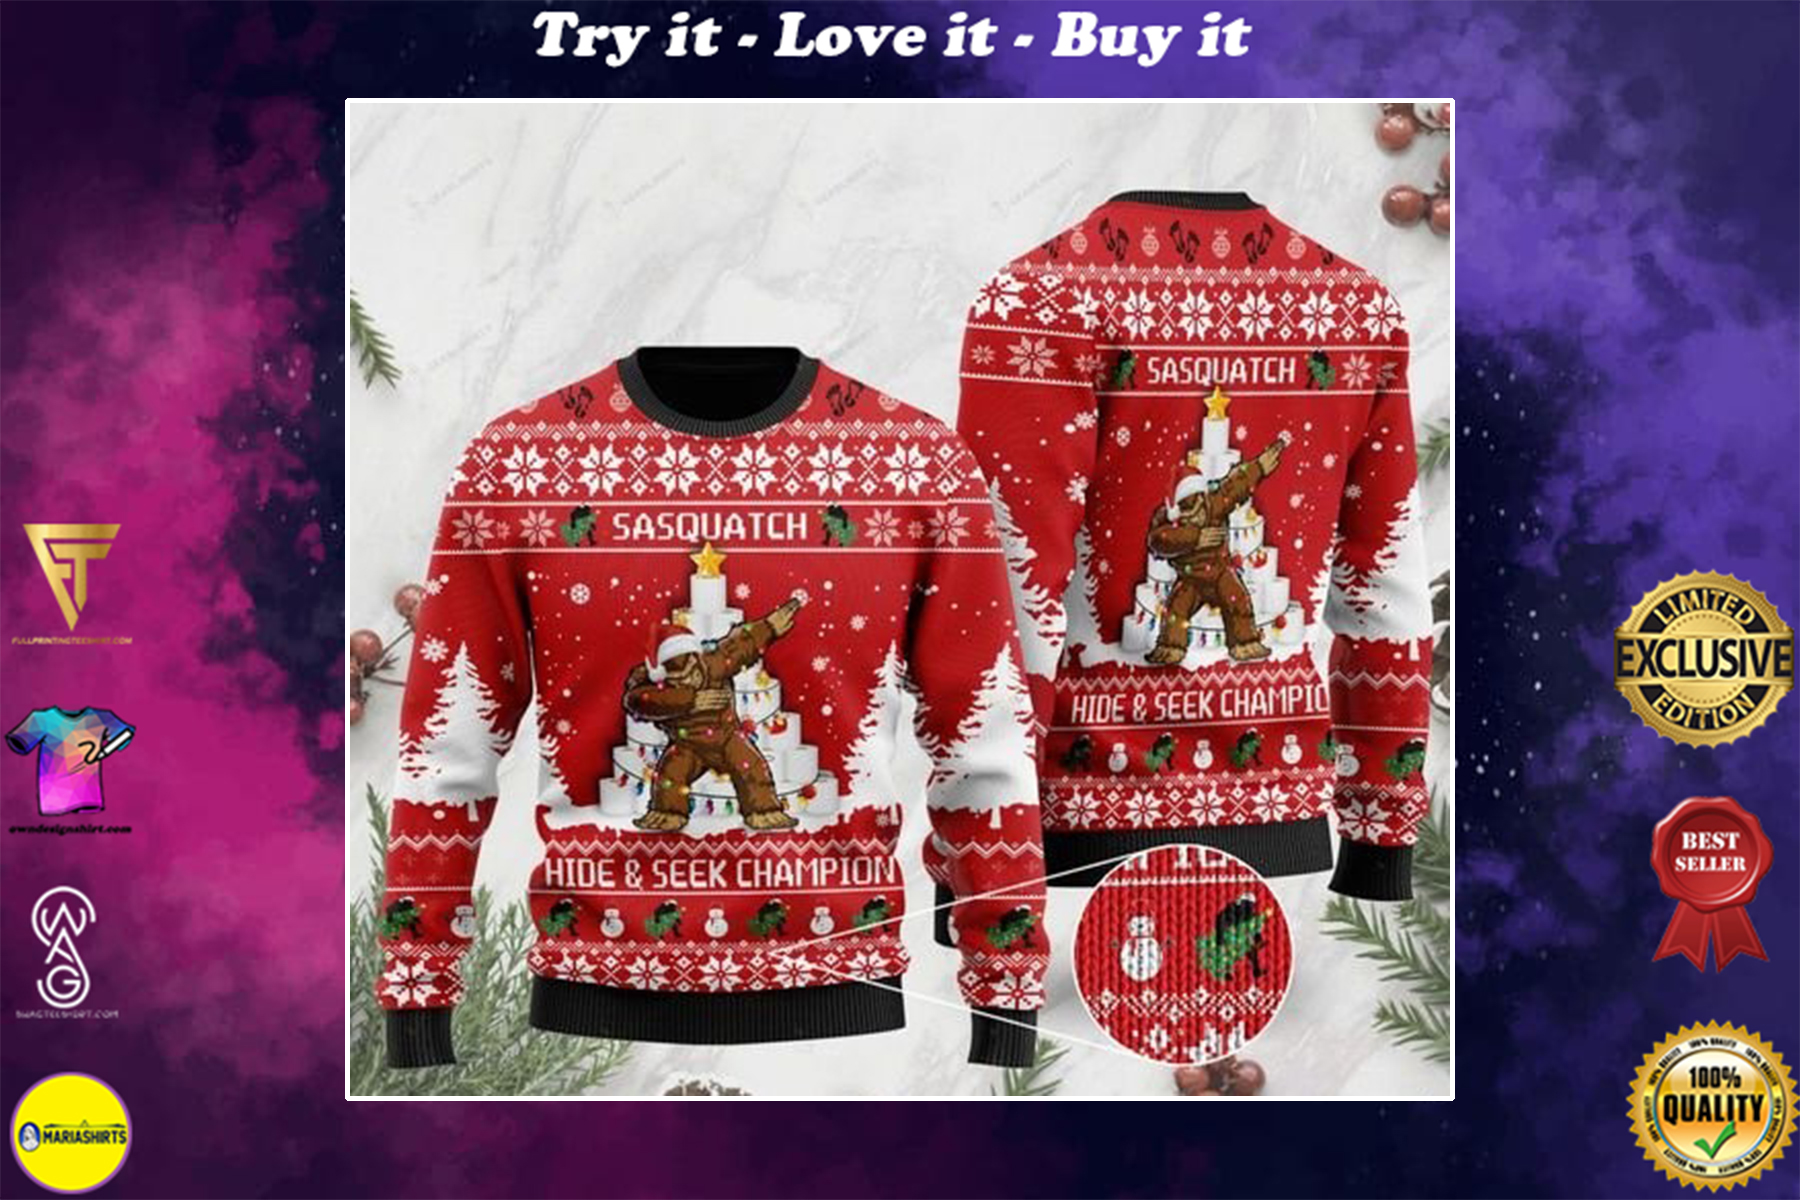 [highest selling] bigfoot and toilet paper sasquatch hide and seek champion ugly sweater - maria